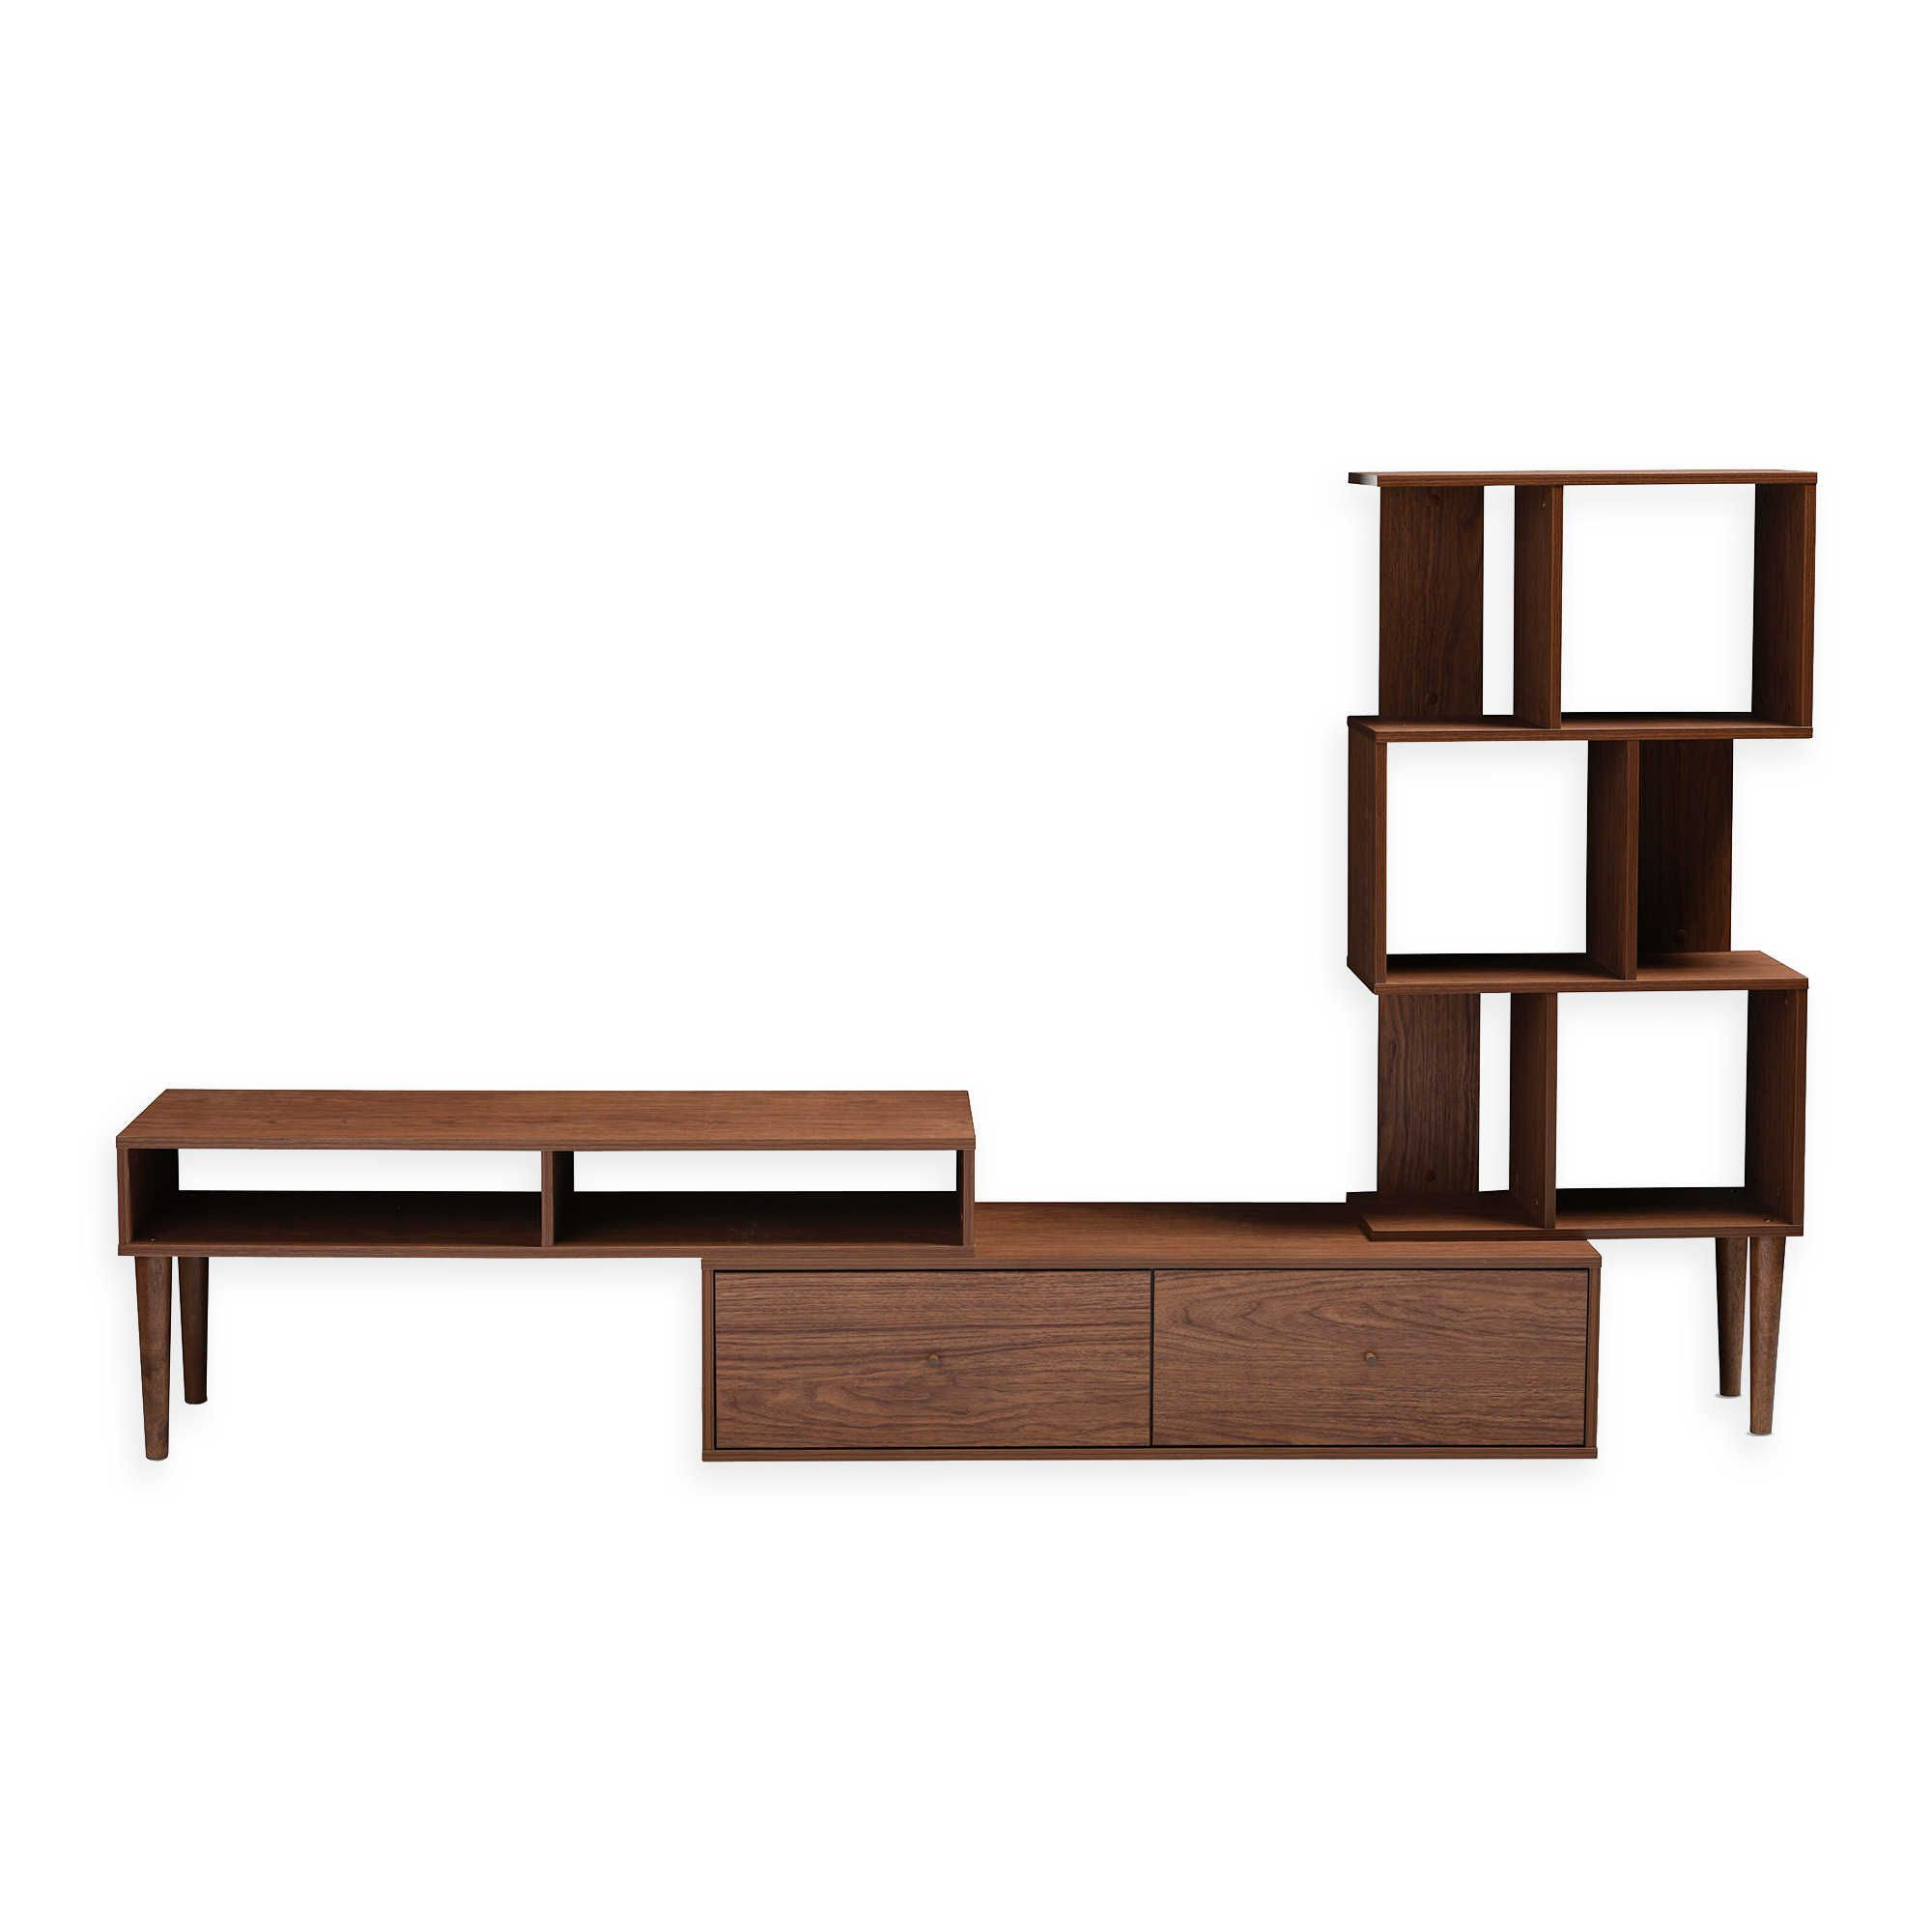 Baxton Studio Tv Cabinet Table Wales Stand Espresso At Home With Inside Dixon White 58 Inch Tv Stands (View 9 of 20)